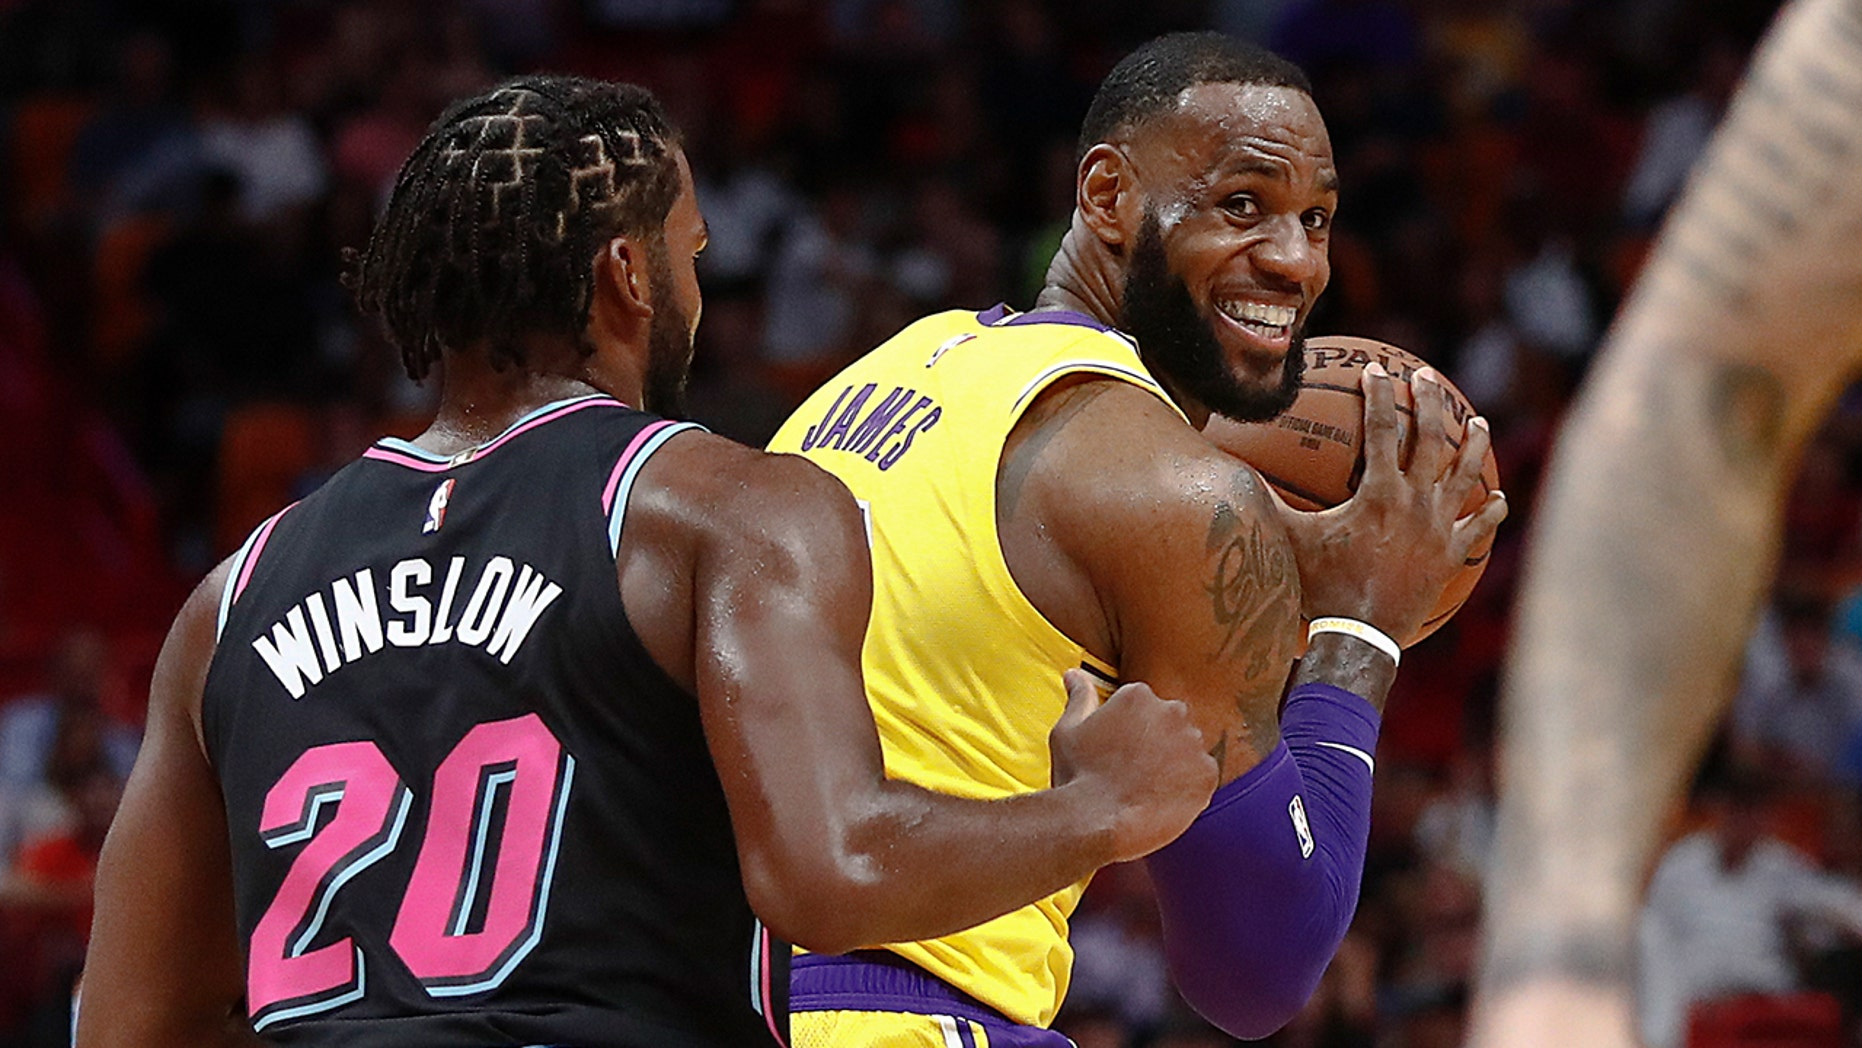 Los Angeles Lakers star LeBron James scored 51 points in Sunday's win against the Miami Heat.